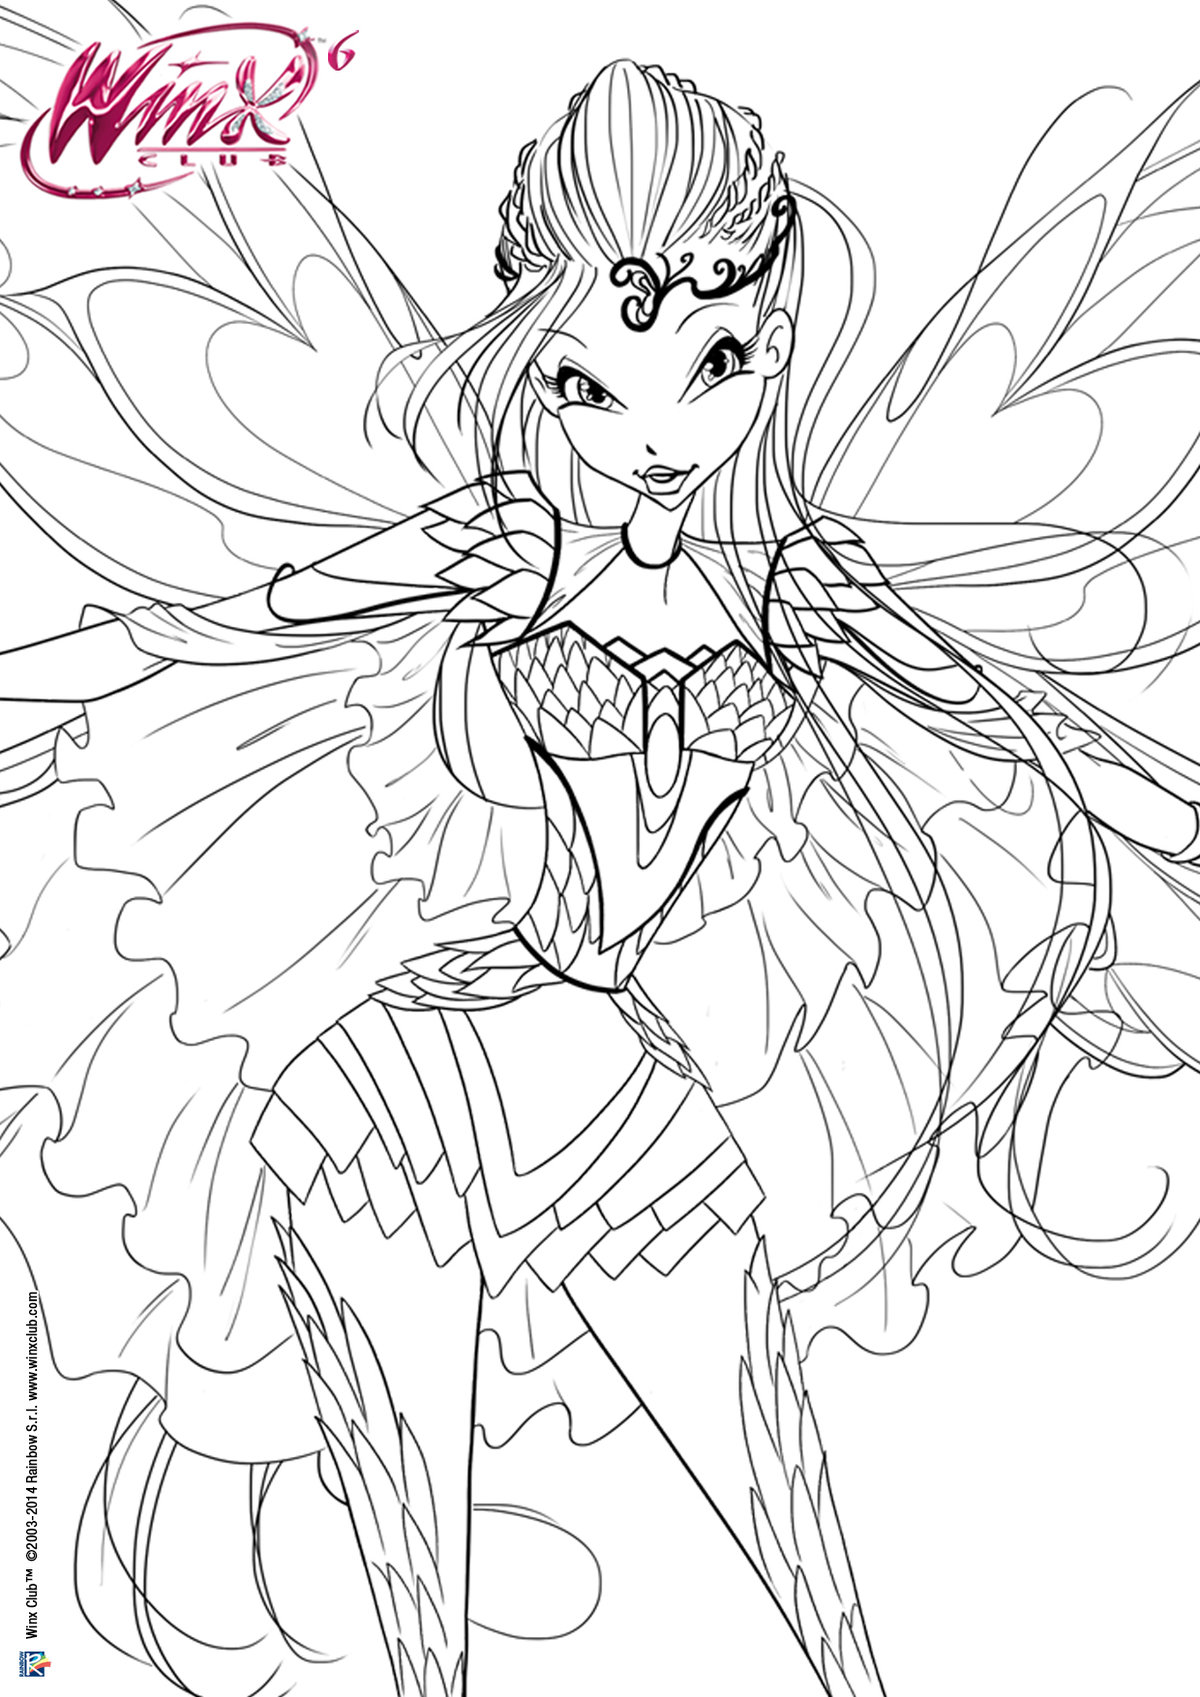 Coloring Pages Winx Bloom Freecoloring4ucom Card From User